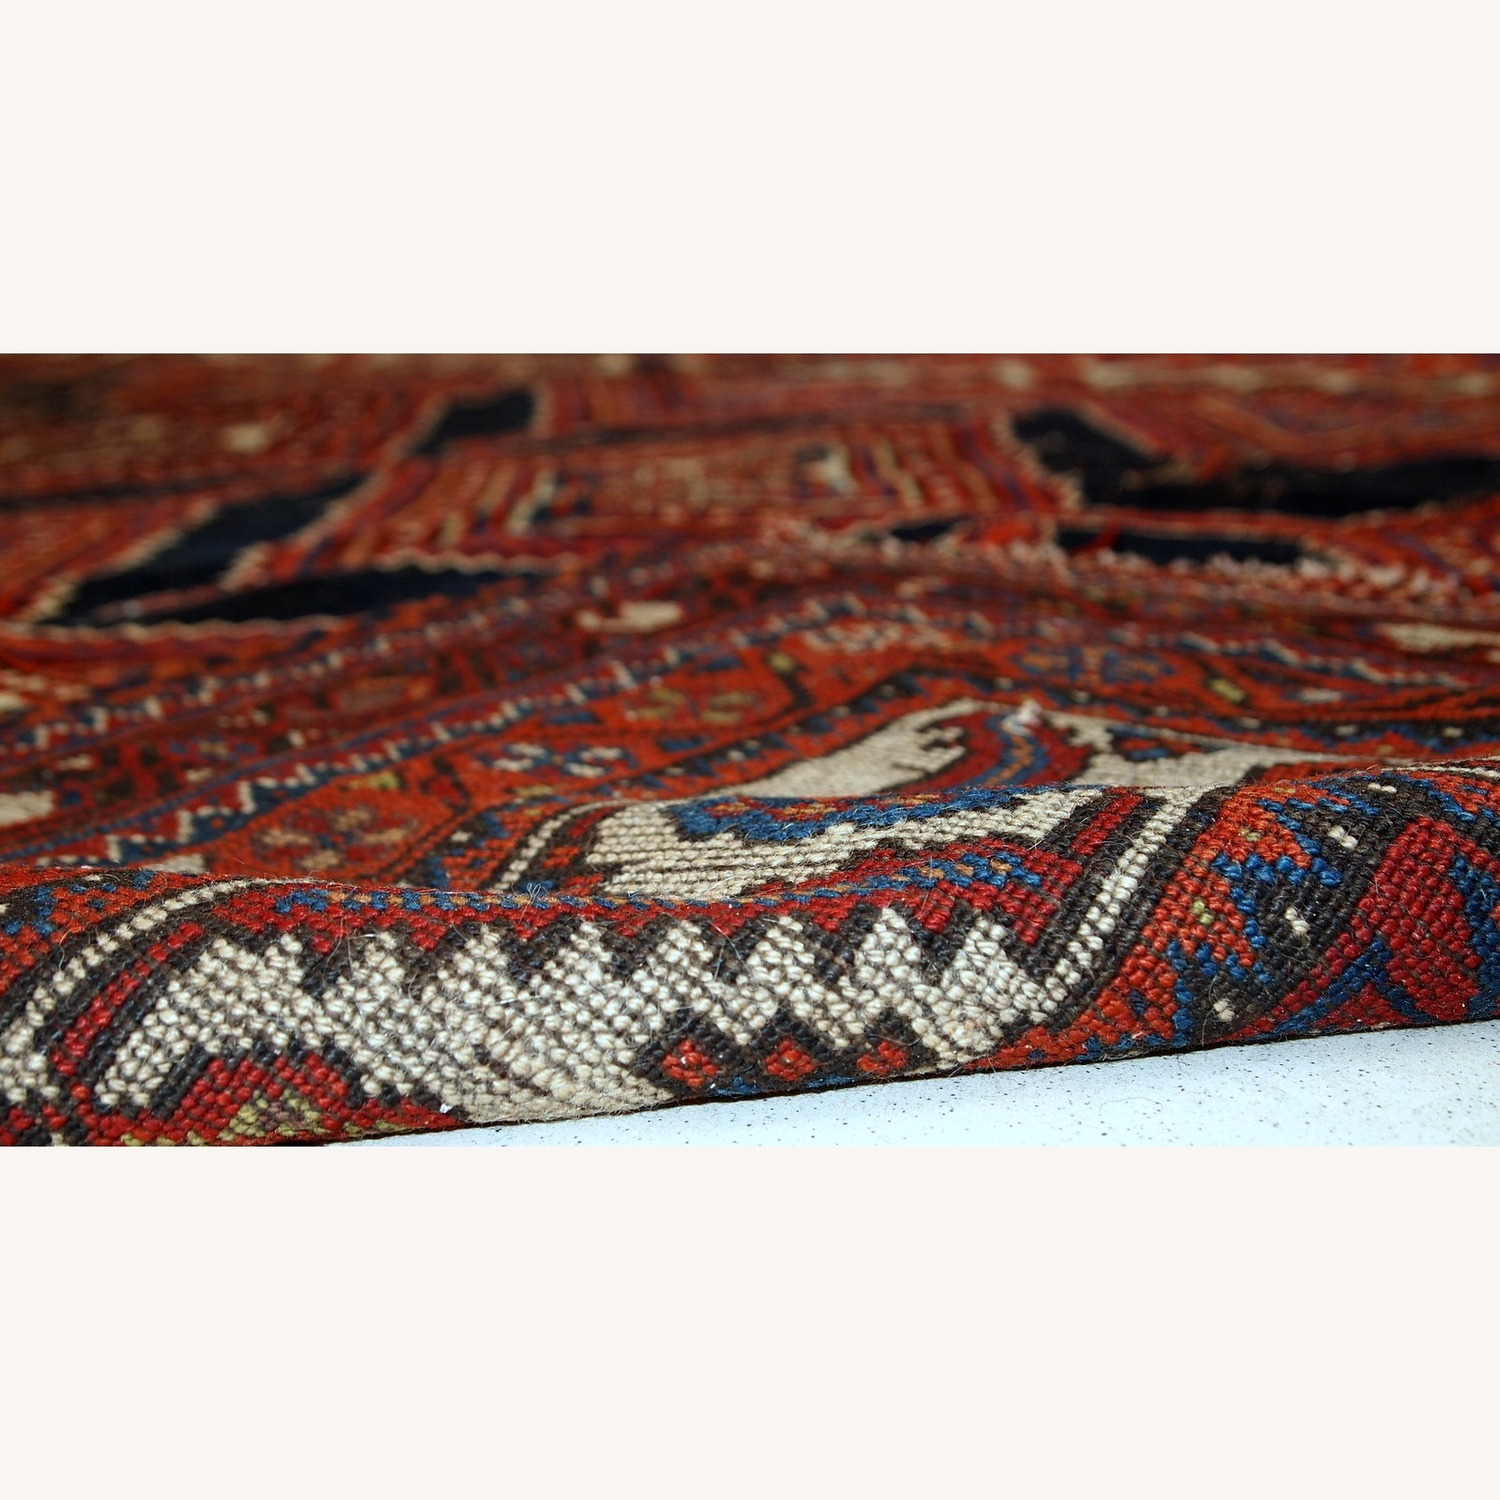 Handmade Antique Distressed Persian Shiraz Rug - image-5